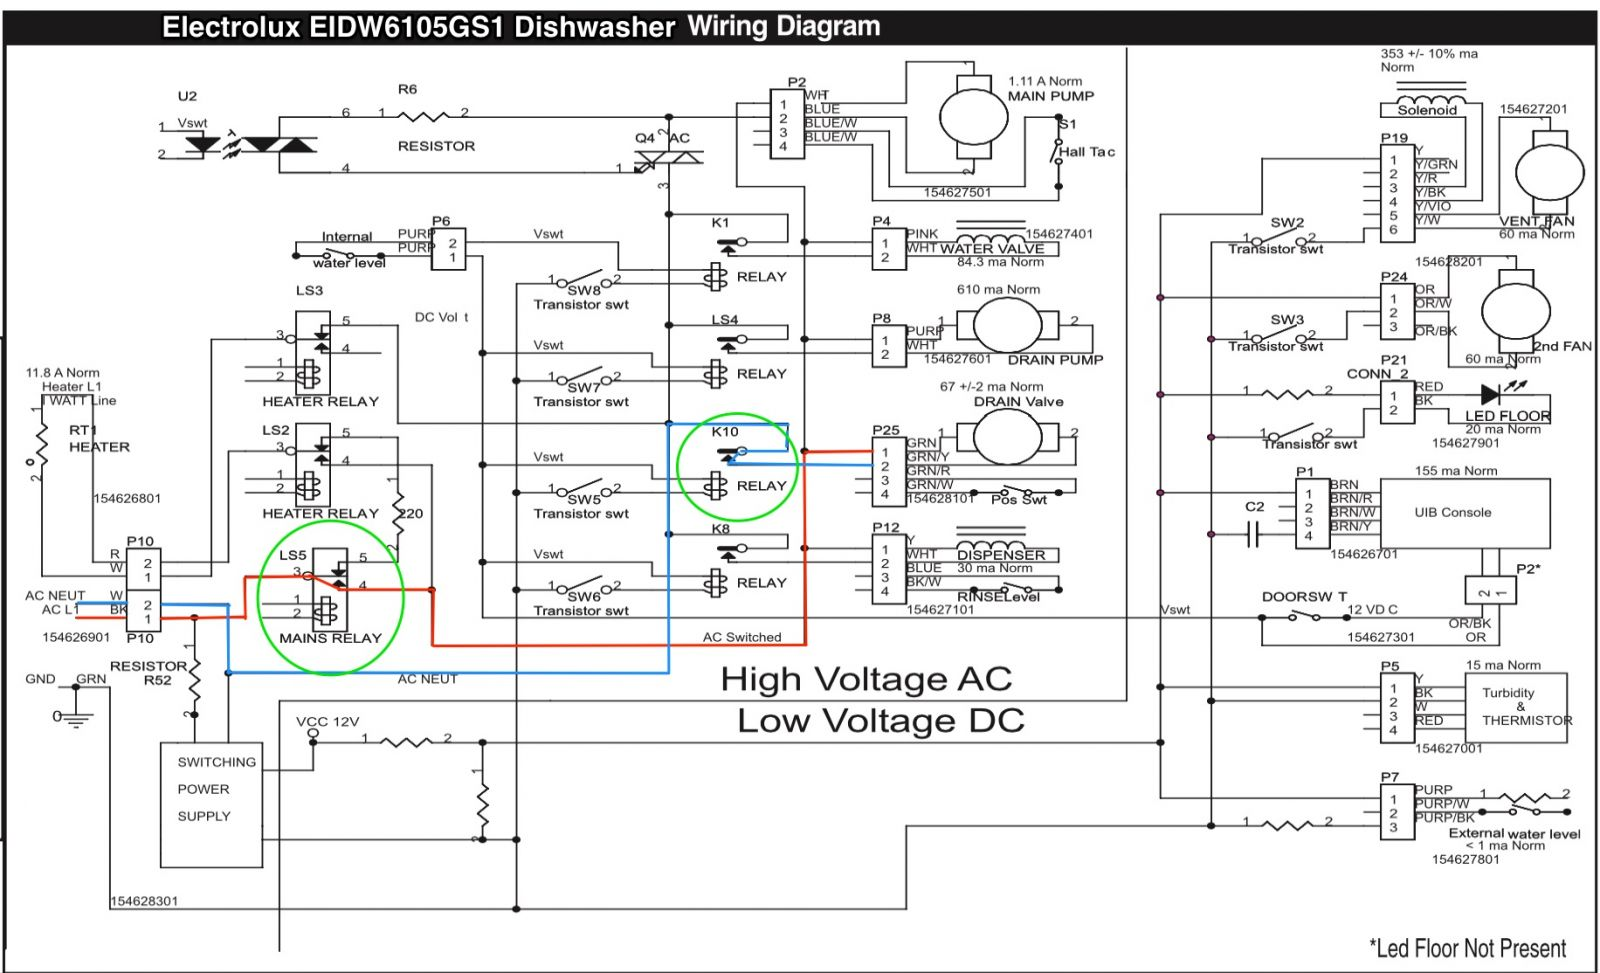 electrolux eidw6105gs1 dishwasher wiring diagram the appliantology rh appliantology org wiring diagram for dishwasher and garbage disposal wiring diagram for lg dishwasher